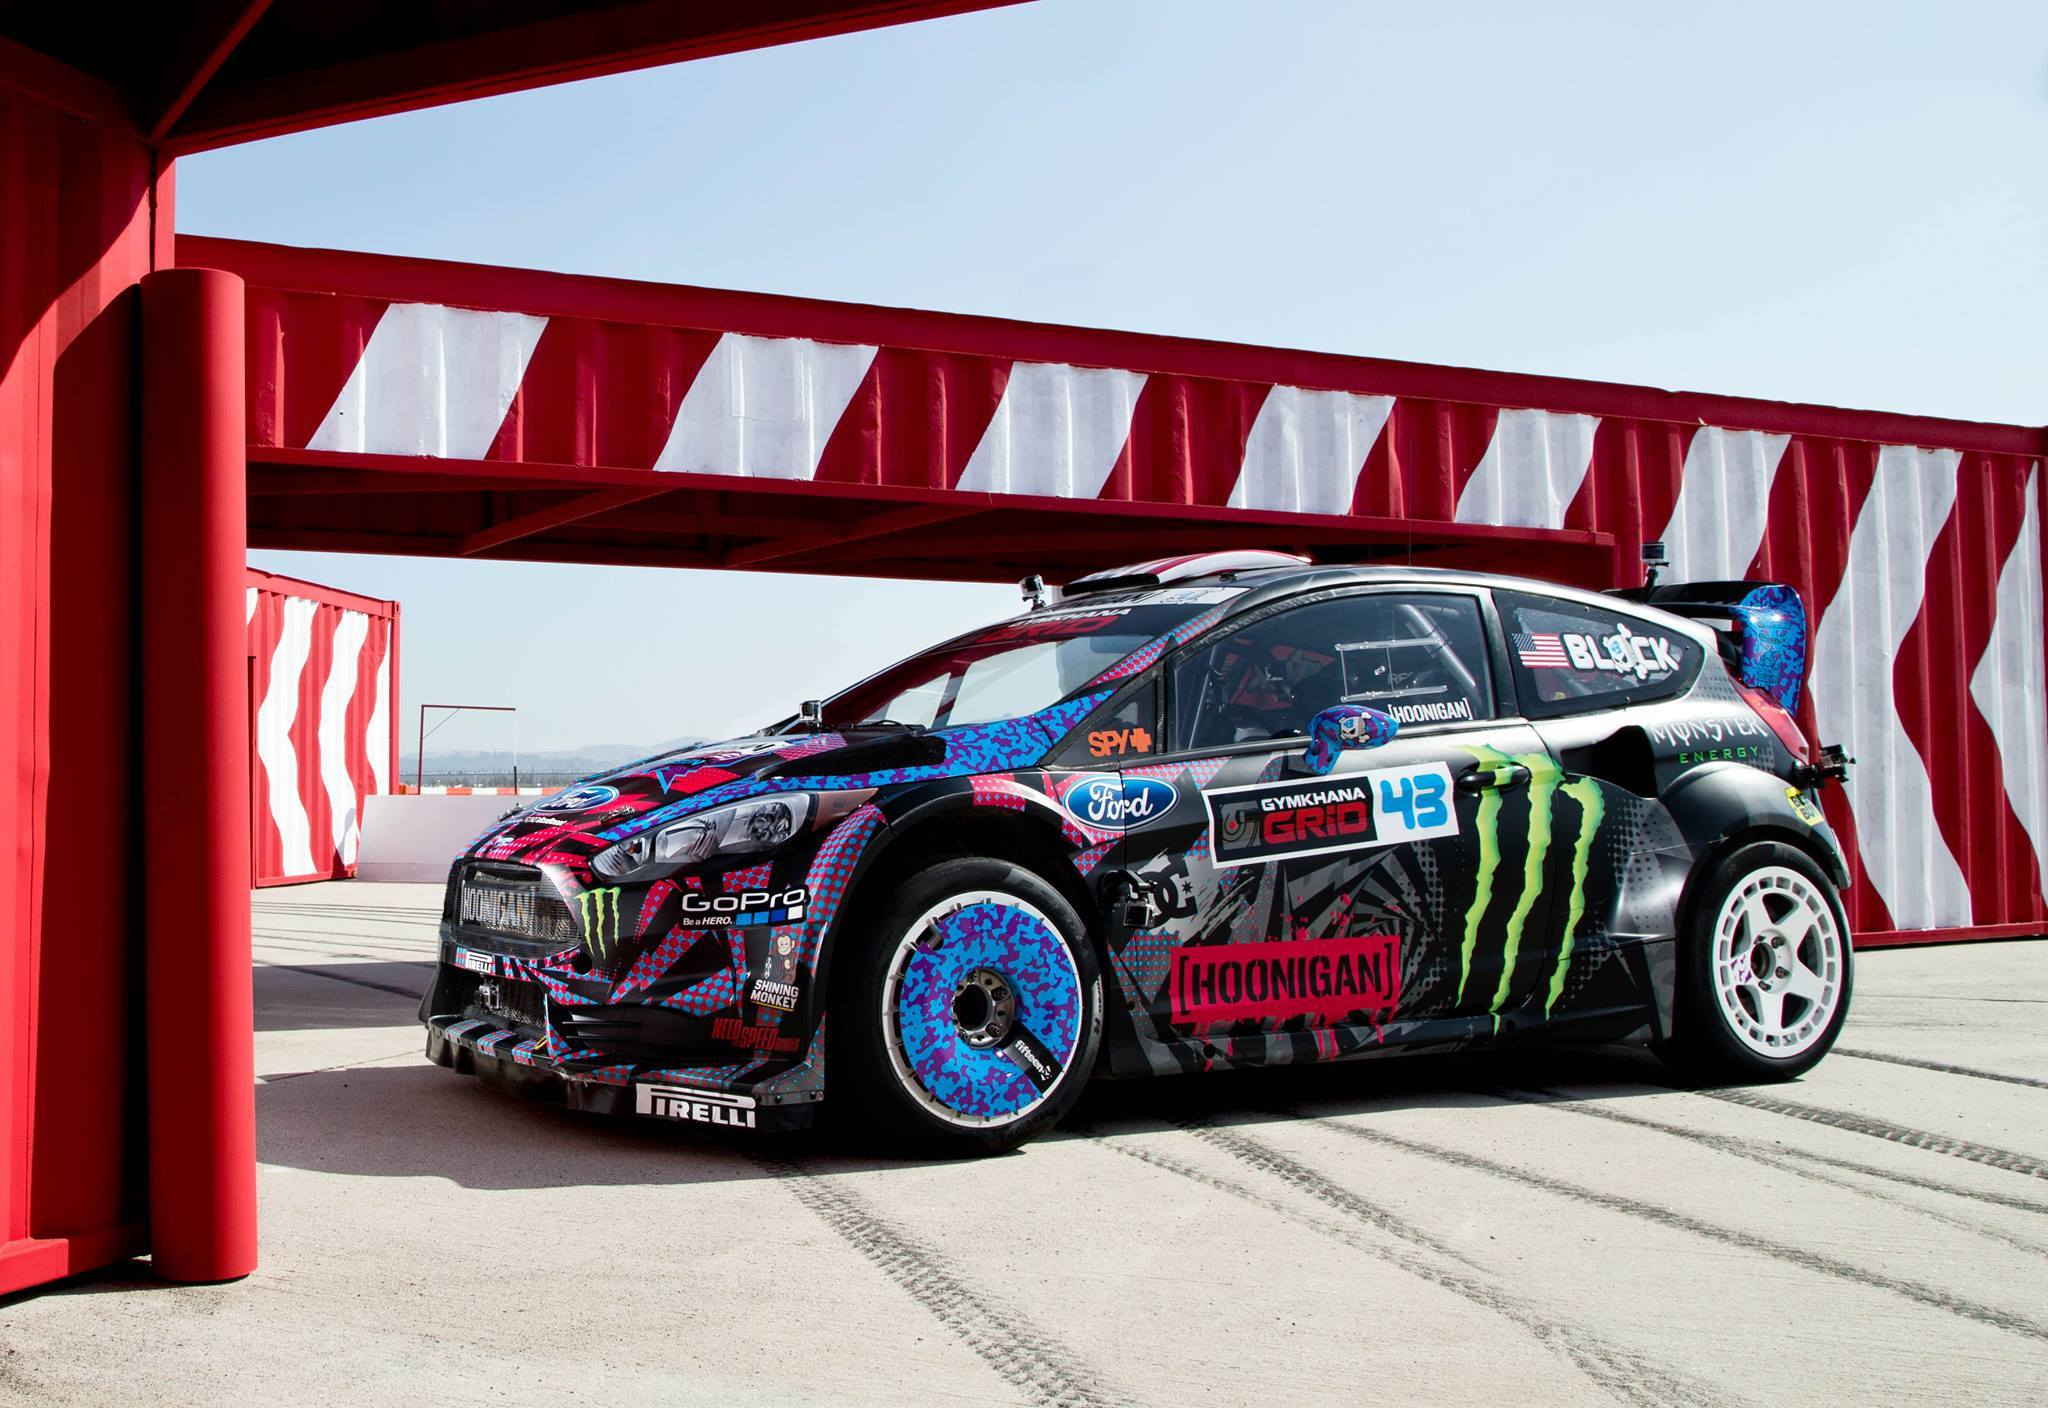 ken block ford fiesta 2015 wallpapers wallpaper cave. Black Bedroom Furniture Sets. Home Design Ideas